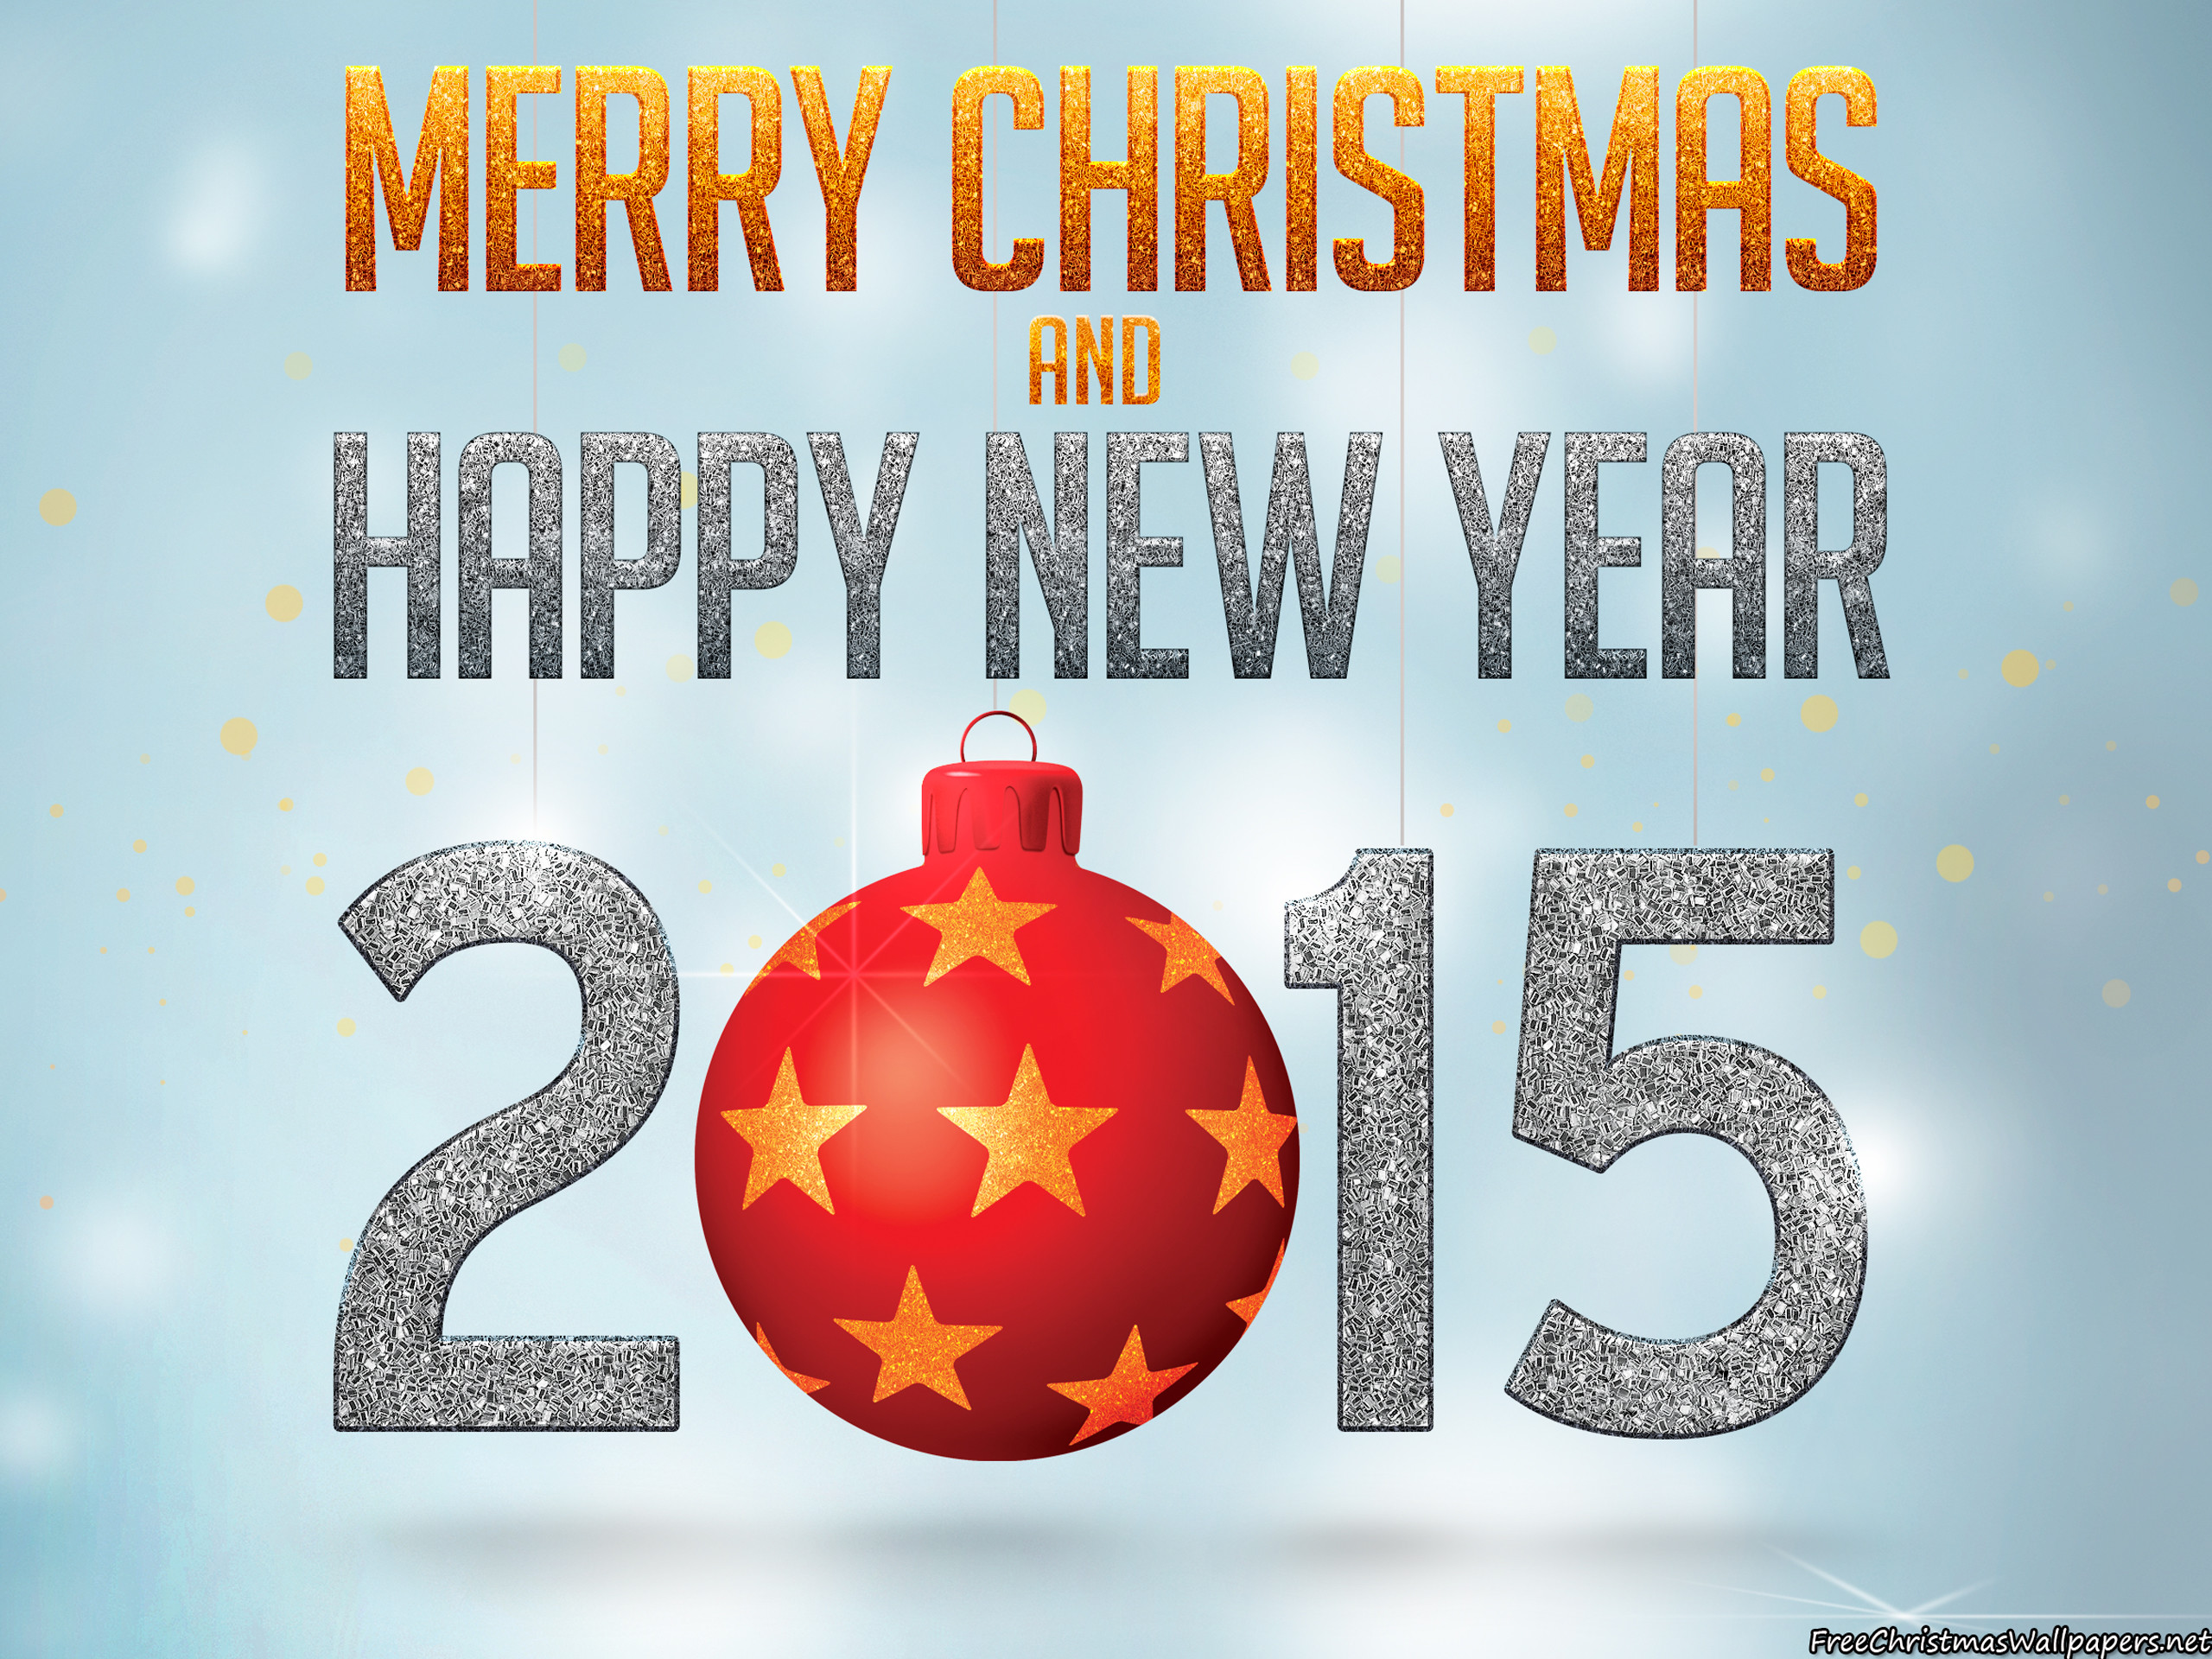 Merry Christmas 2015 Wishes